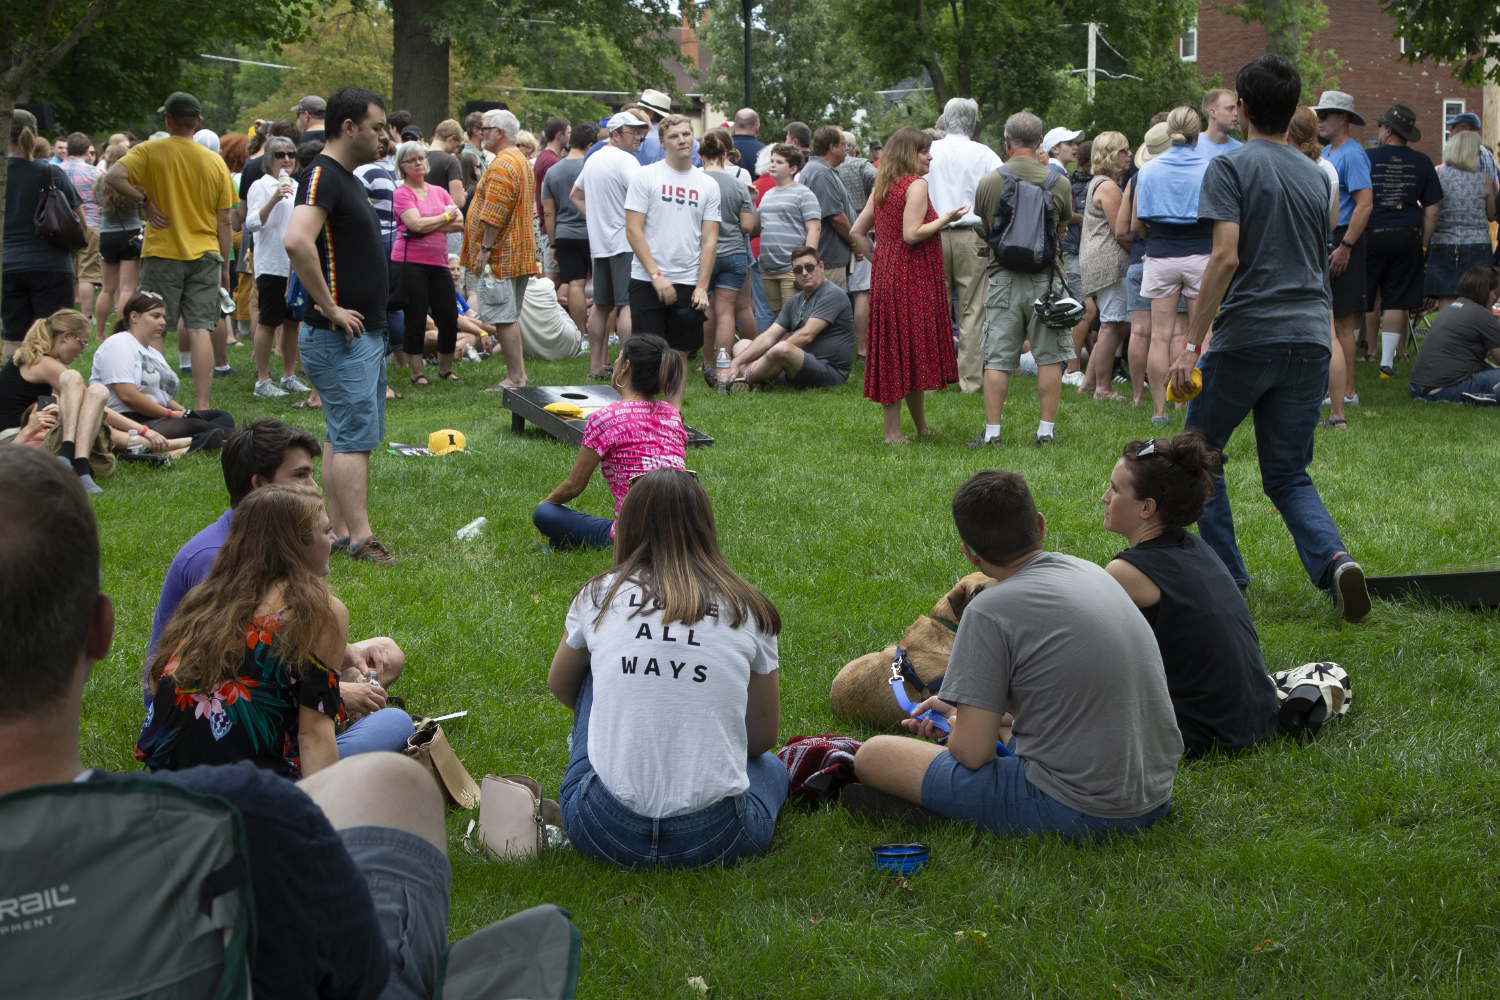 Attendees+wait+for+the+arrival+of+2020+Democratic+candidate+Pete+Buttigieg+during+a+lawn+event+to+celebrate+opening+his+new+campaign+office+in+downtown+Iowa+City+on+September+2%2C+2019.